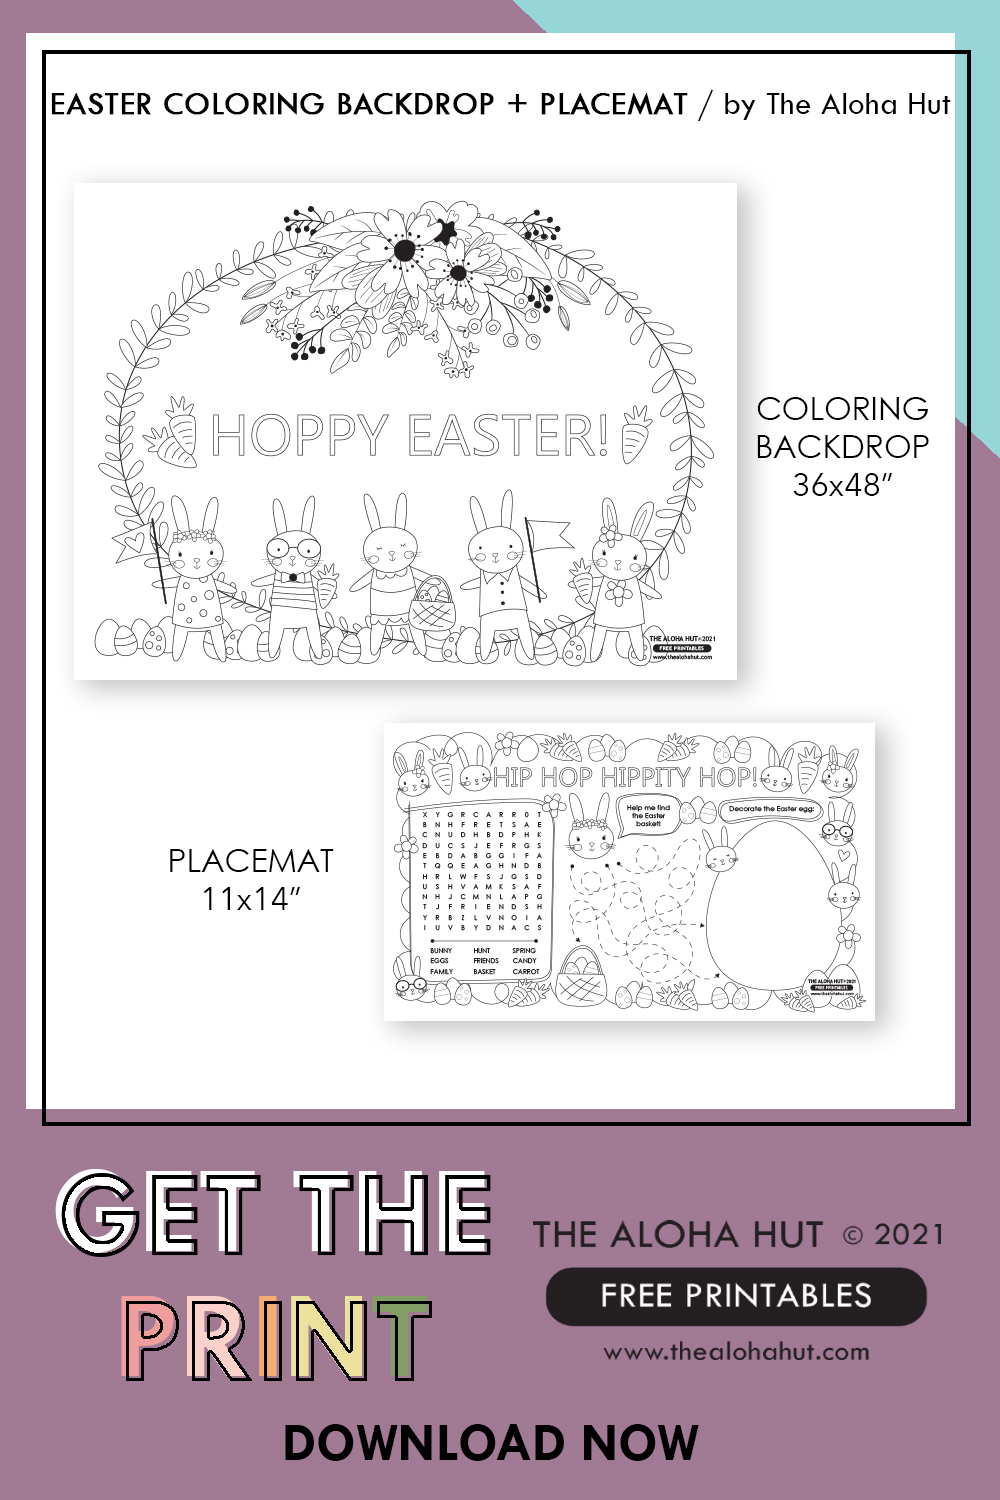 free printable Easter Backdrop + Placemat by the Aloha Hut